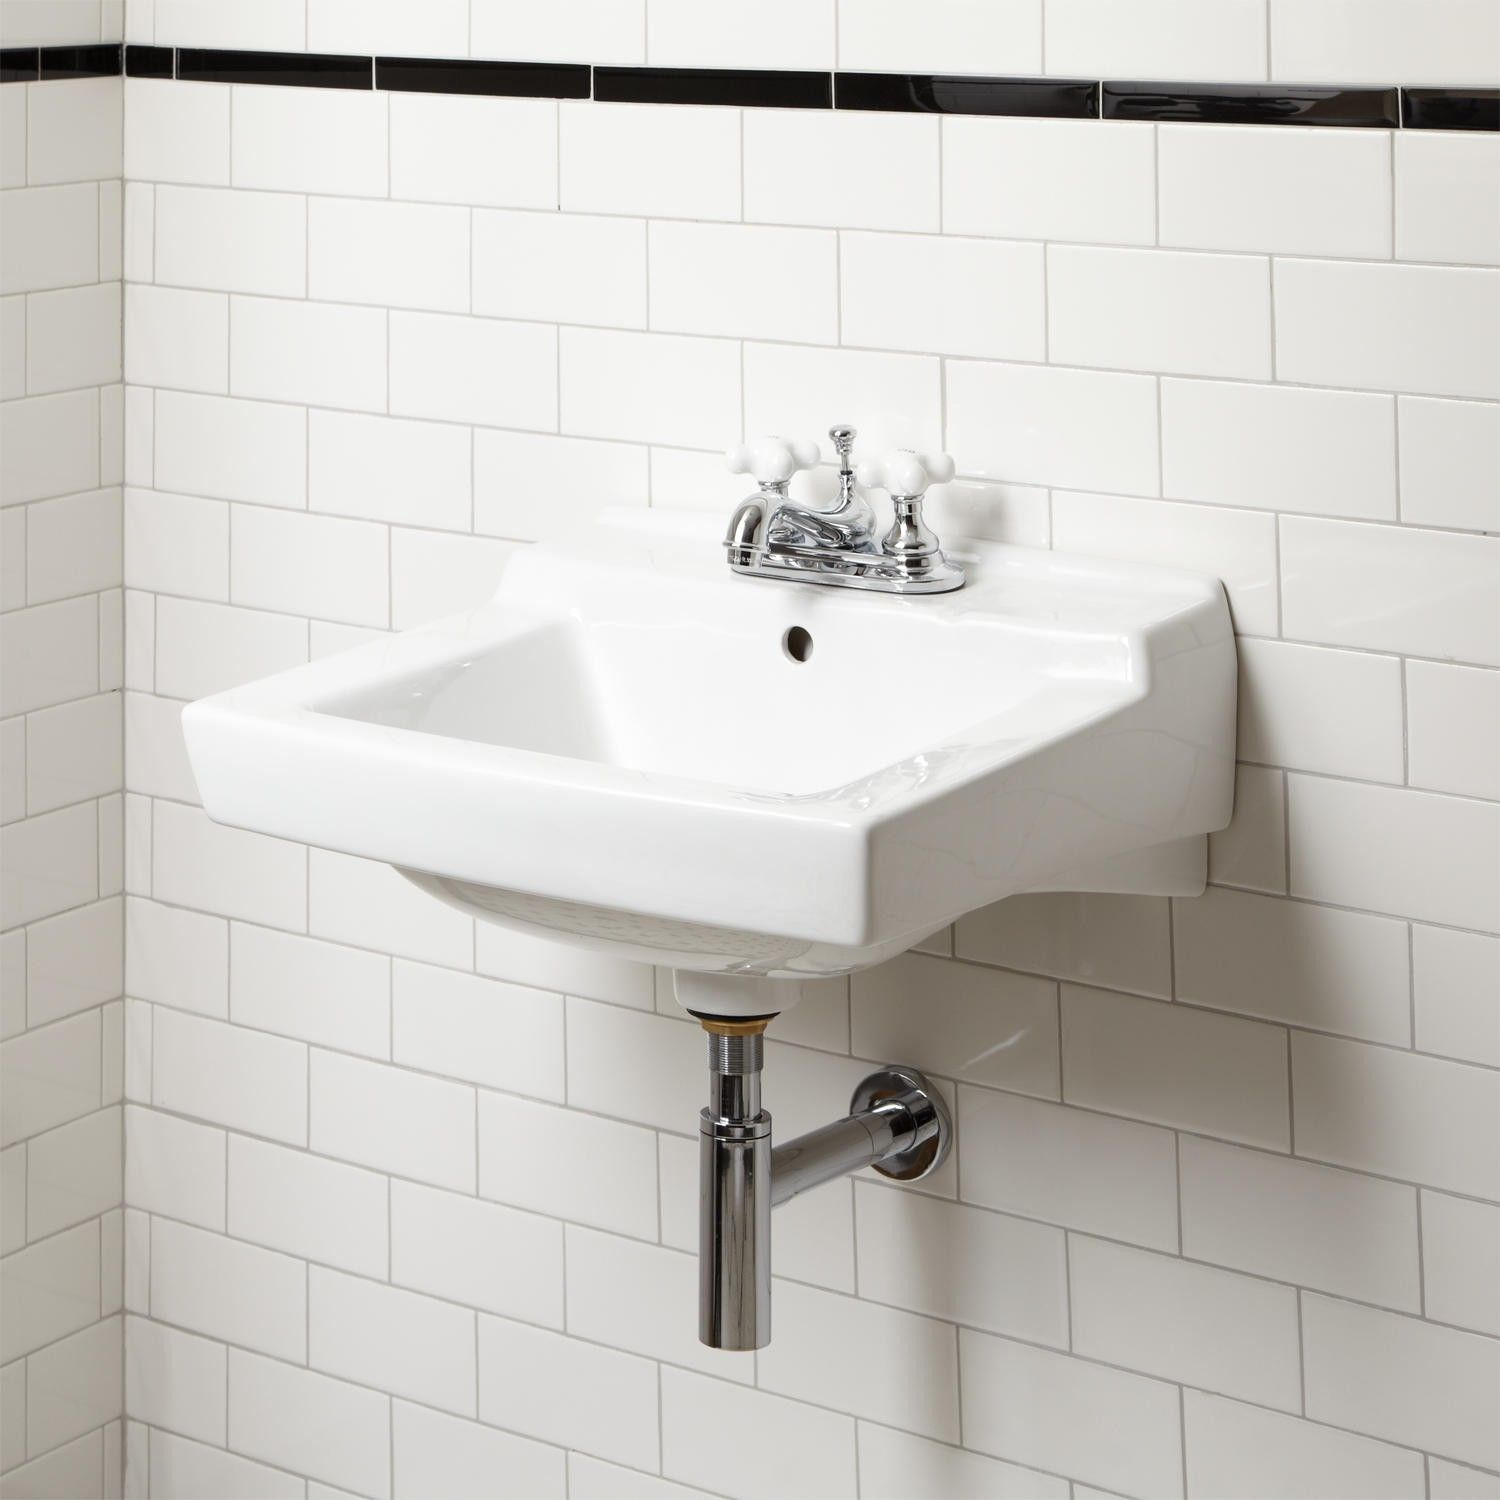 Griffith Wall Mount Bathroom Sink   Wall Mount Sinks   Bathroom Sinks    Bathroom